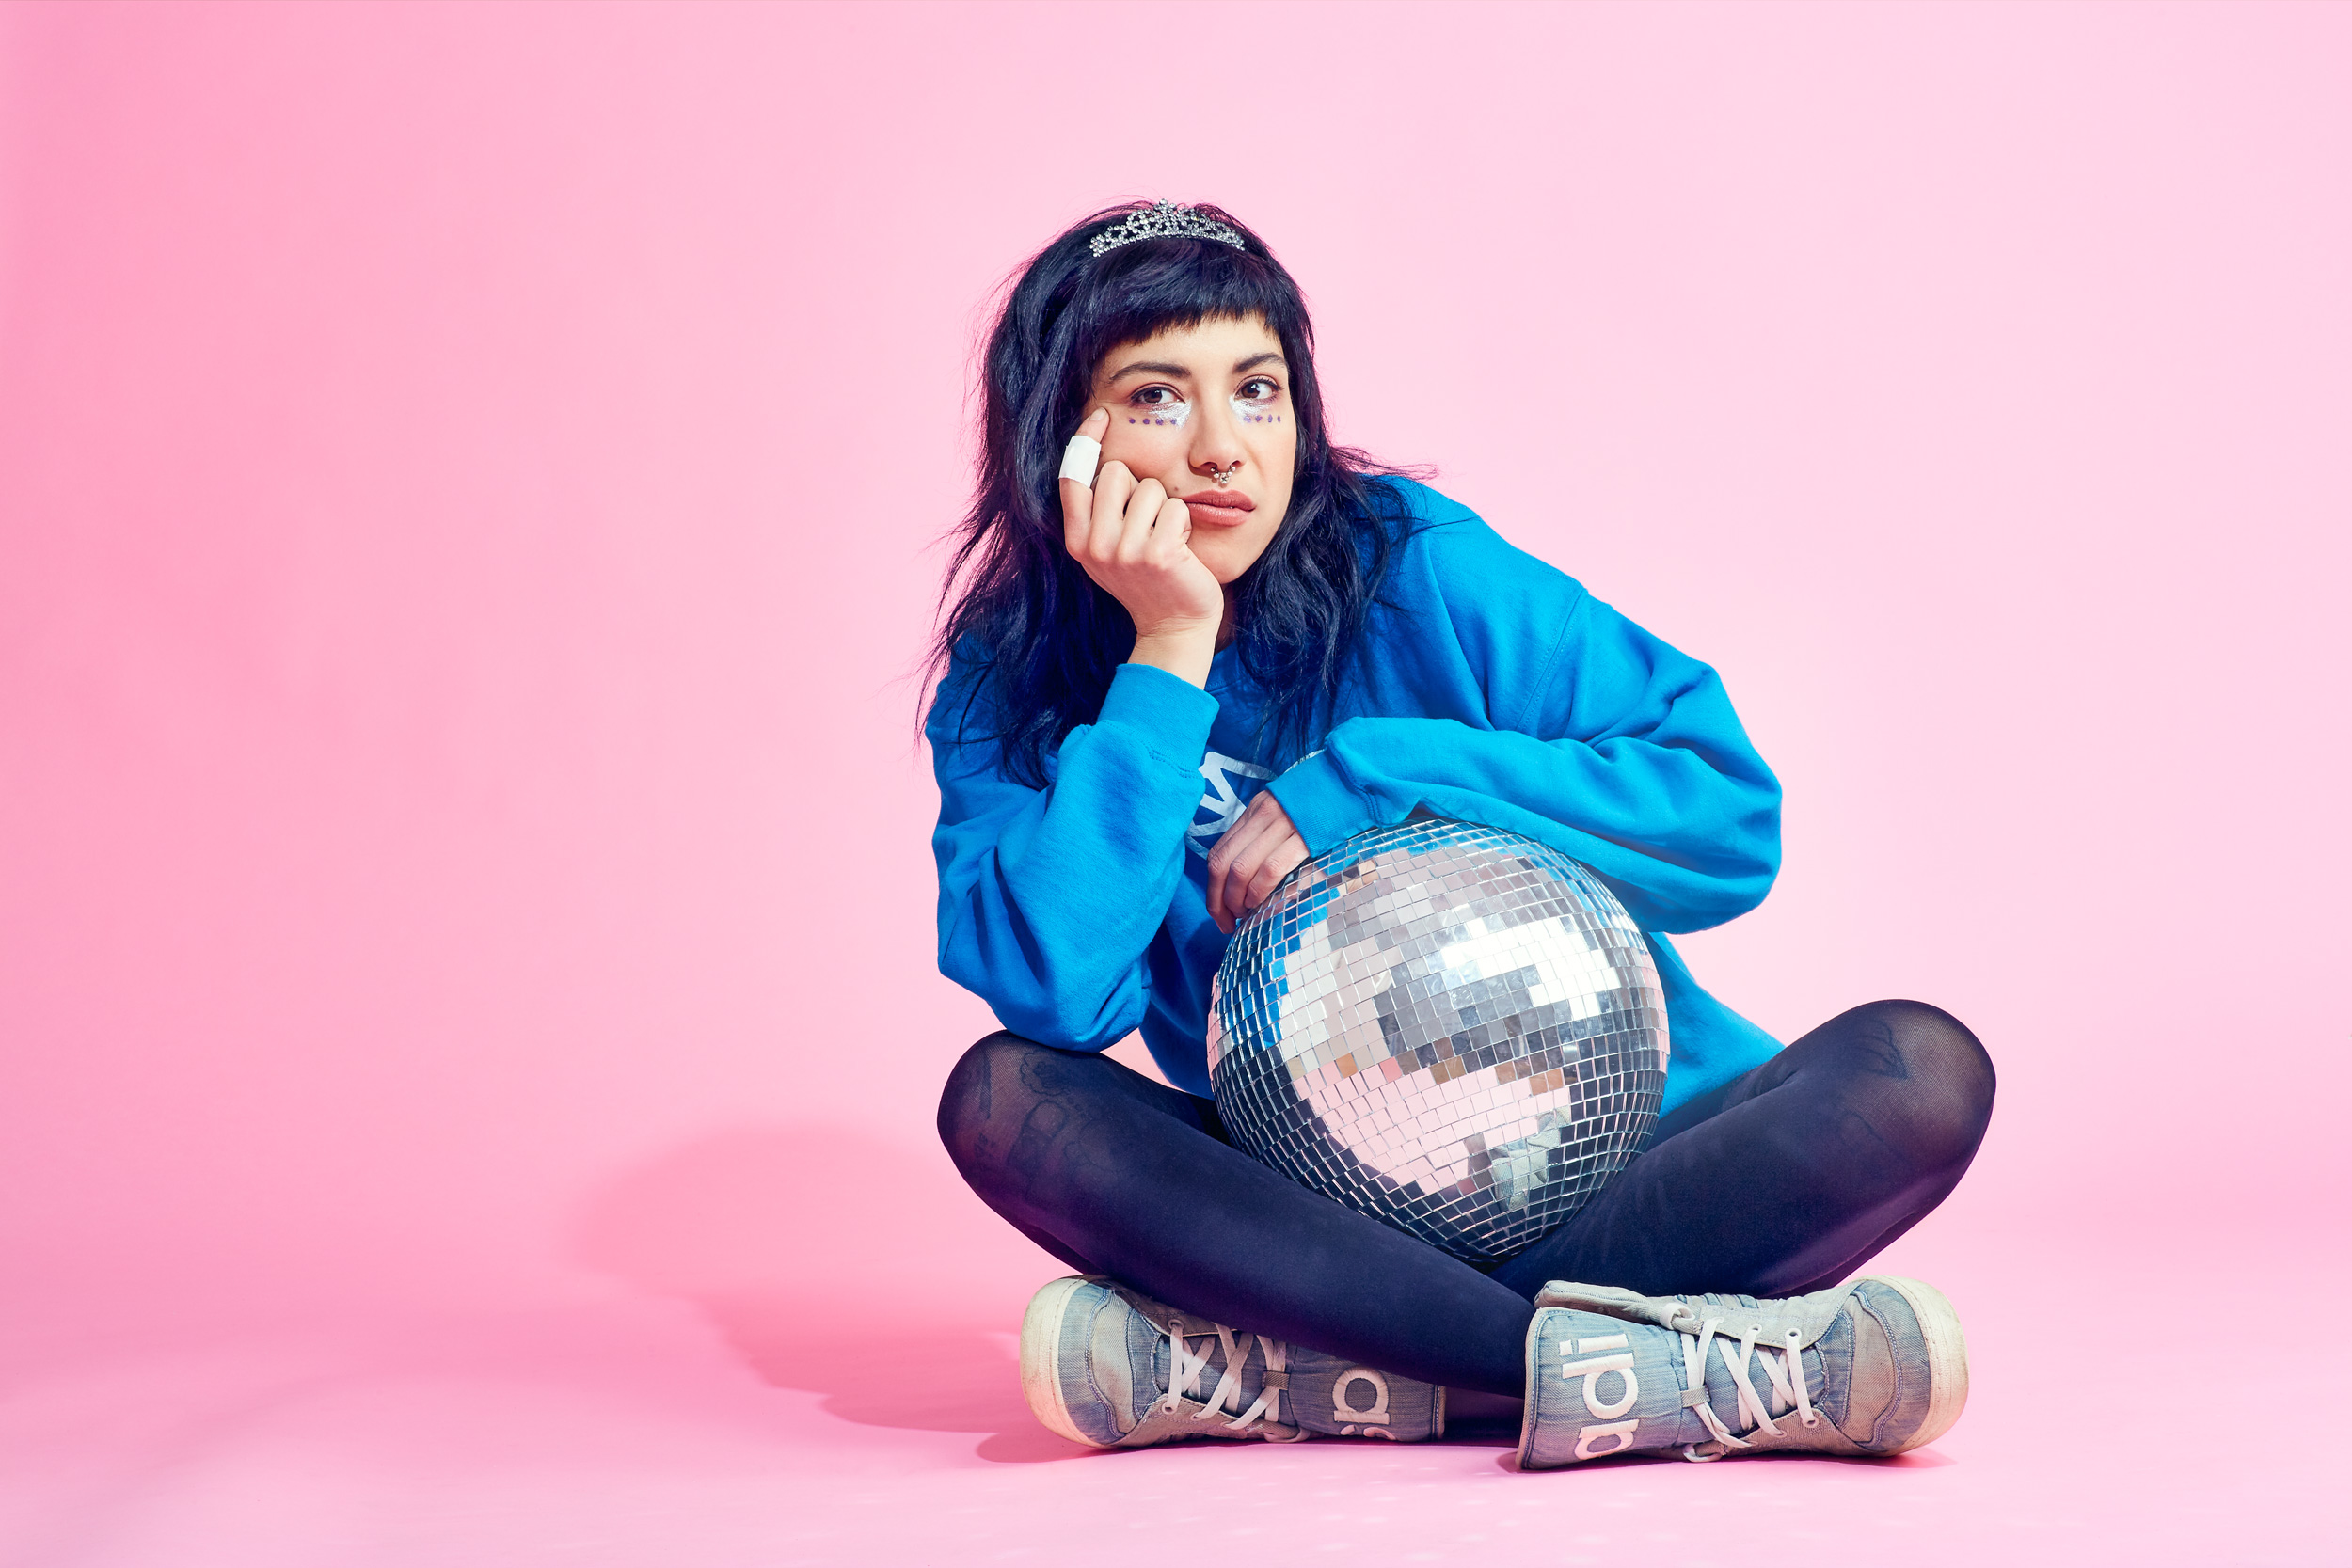 Portrait of a girl with disco ball on pink background photographed by Dave Rentauskas